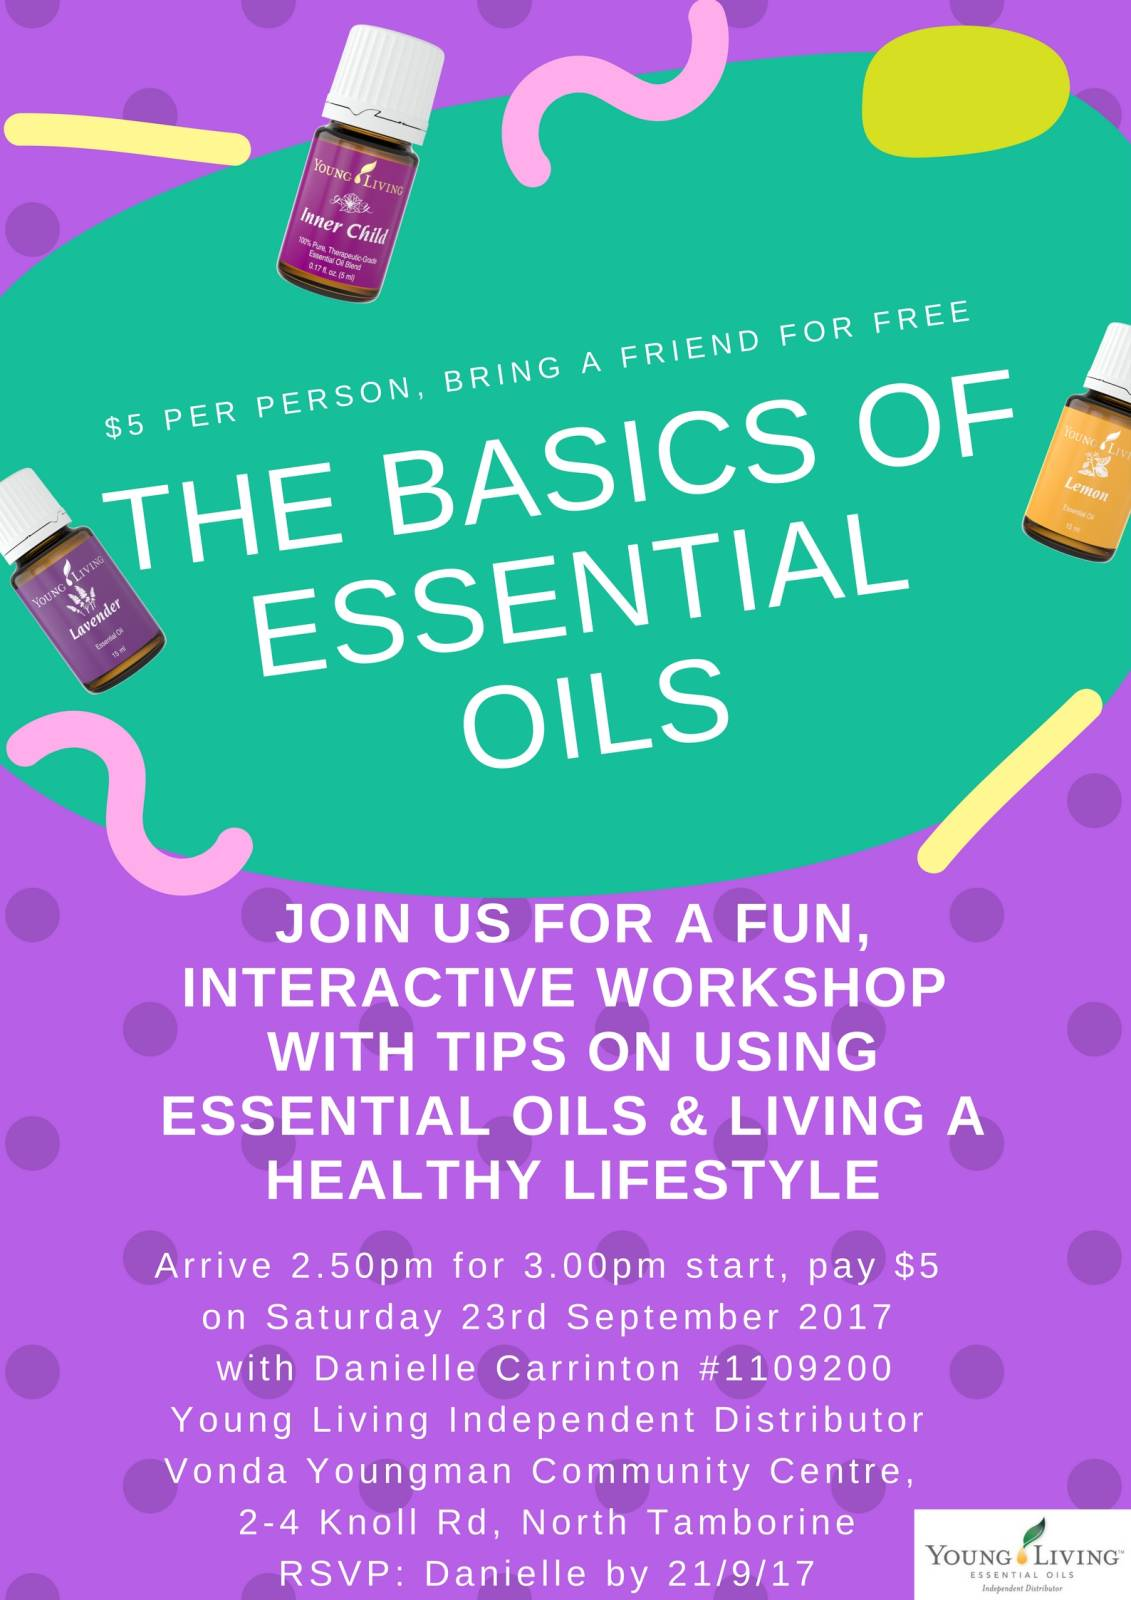 Tamborine Workshop - Fun with Essential Oils